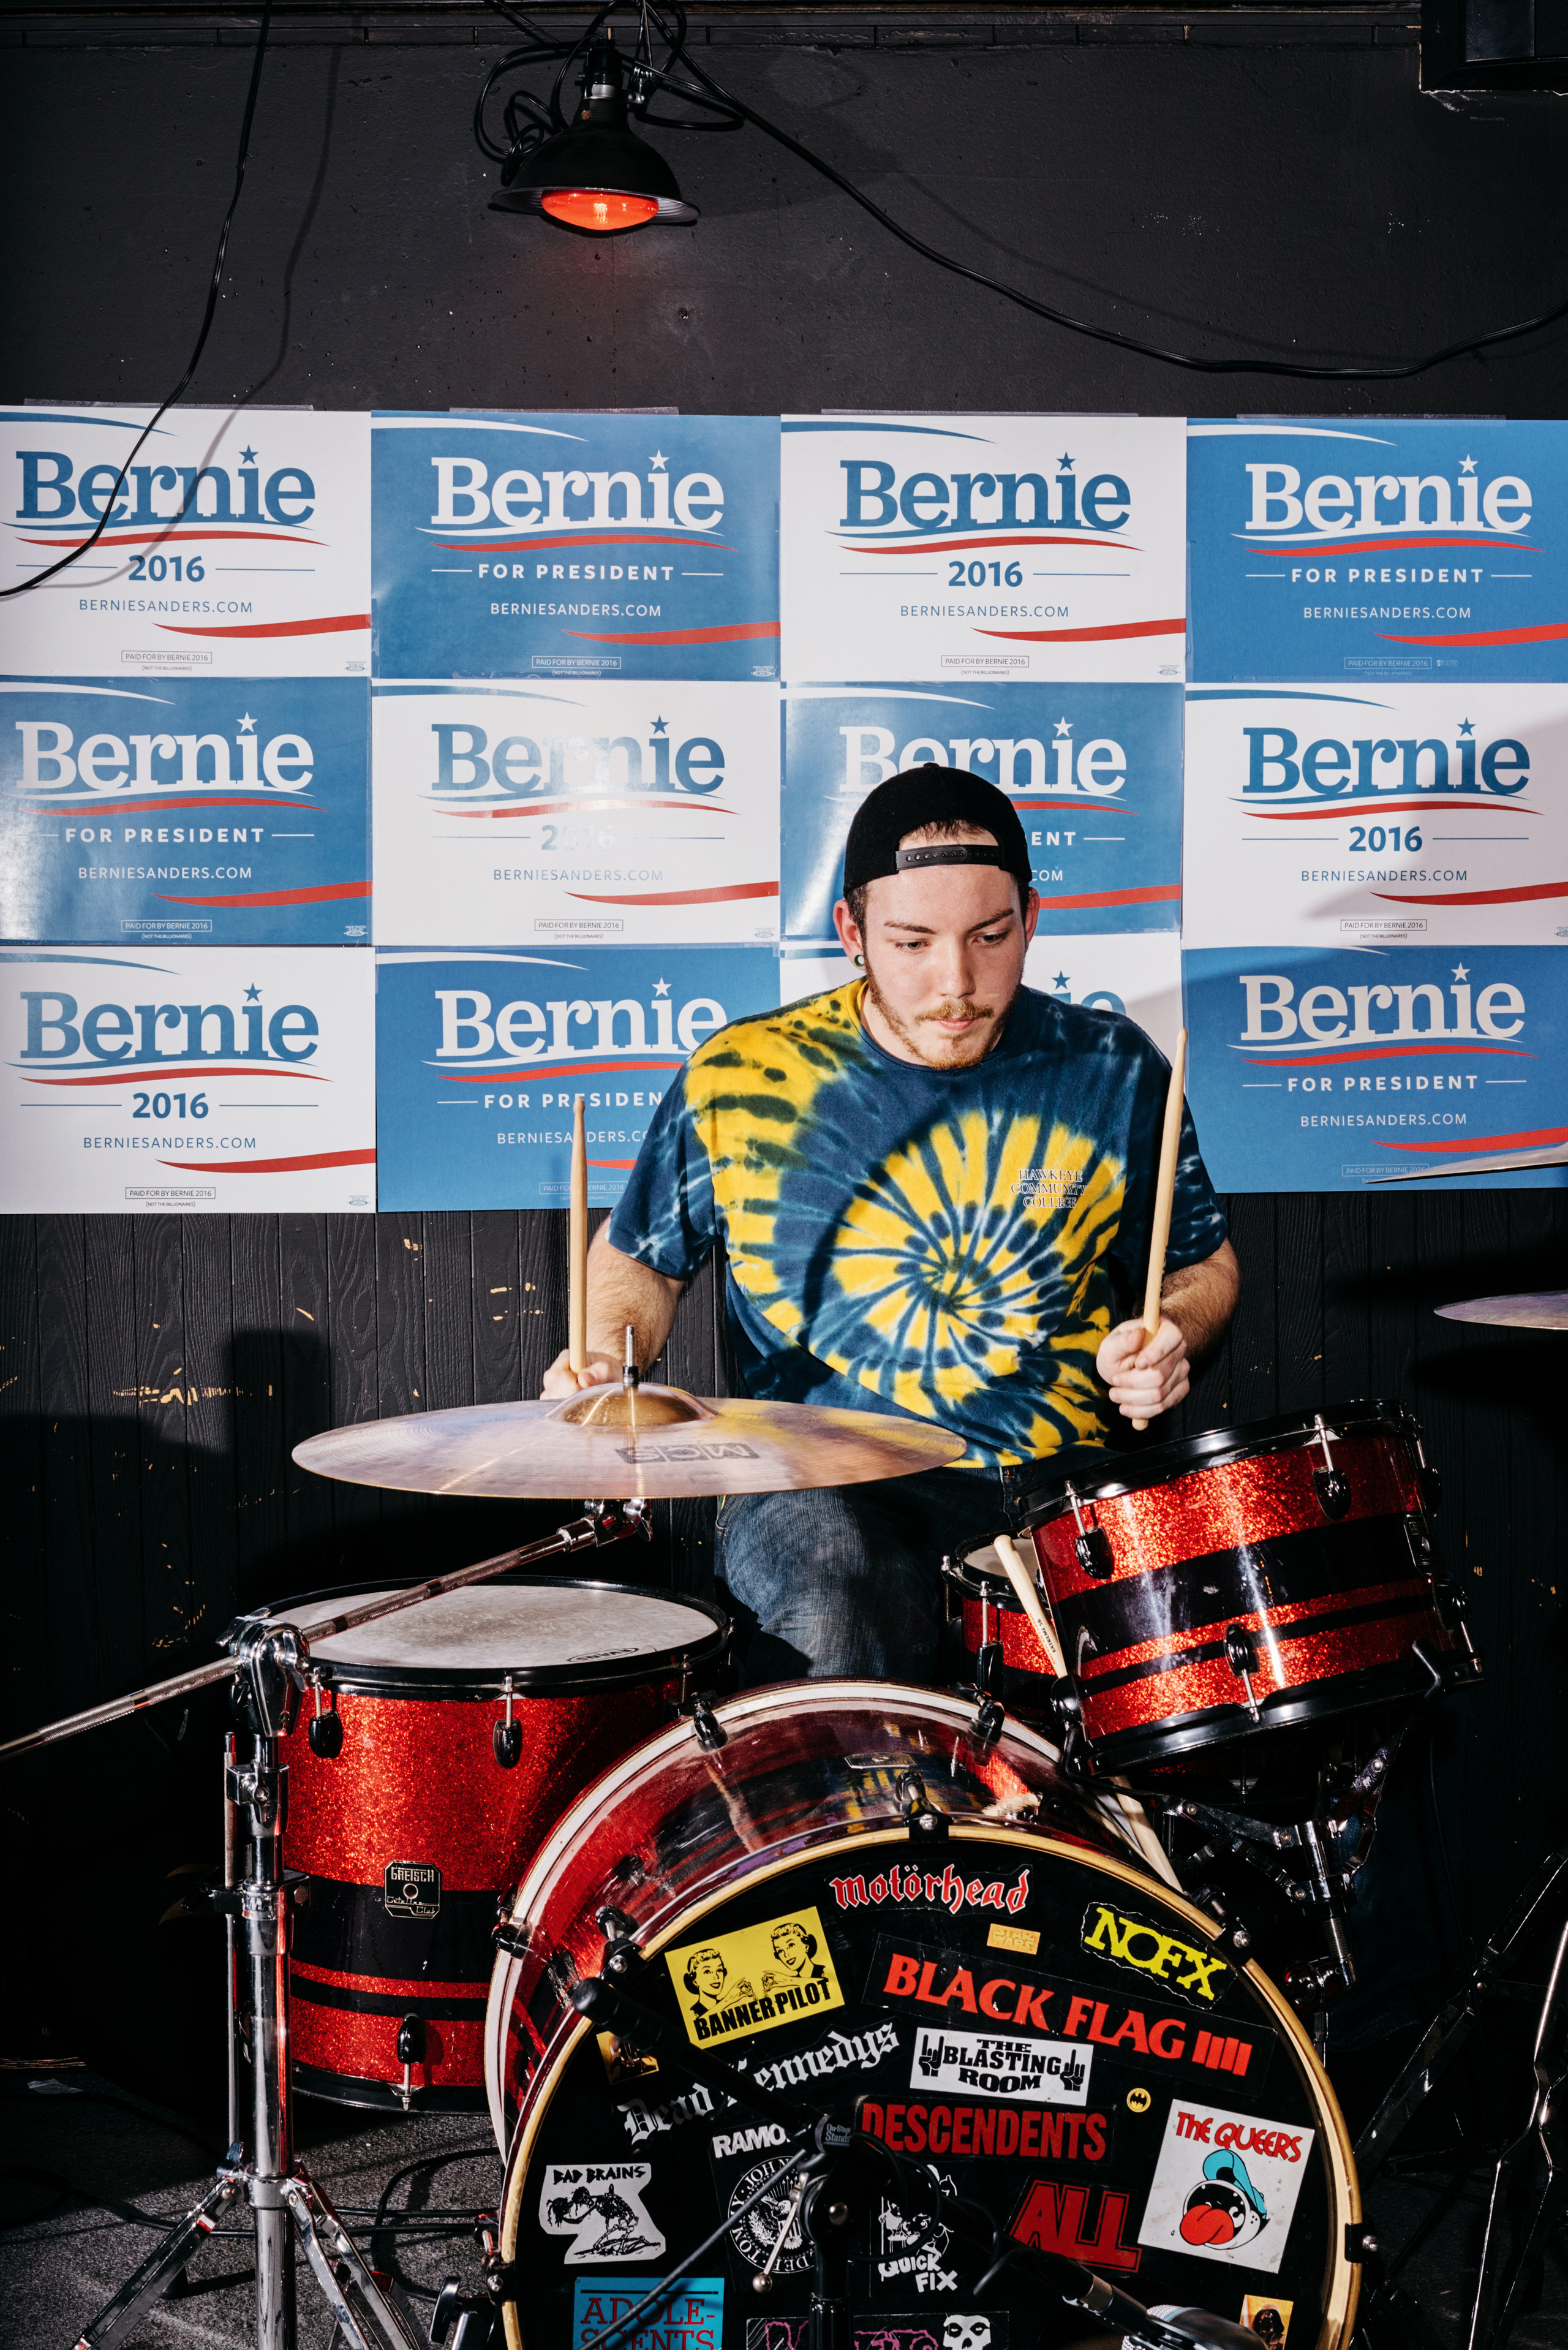 Drummer, Mason Wise of Shutup performs at a Bernie Sanders fundraiser billed as  Waterloo Shred for Bernie: Part 2  at The Wedge bar in Waterloo, IA, Saturday January 23, 2016.